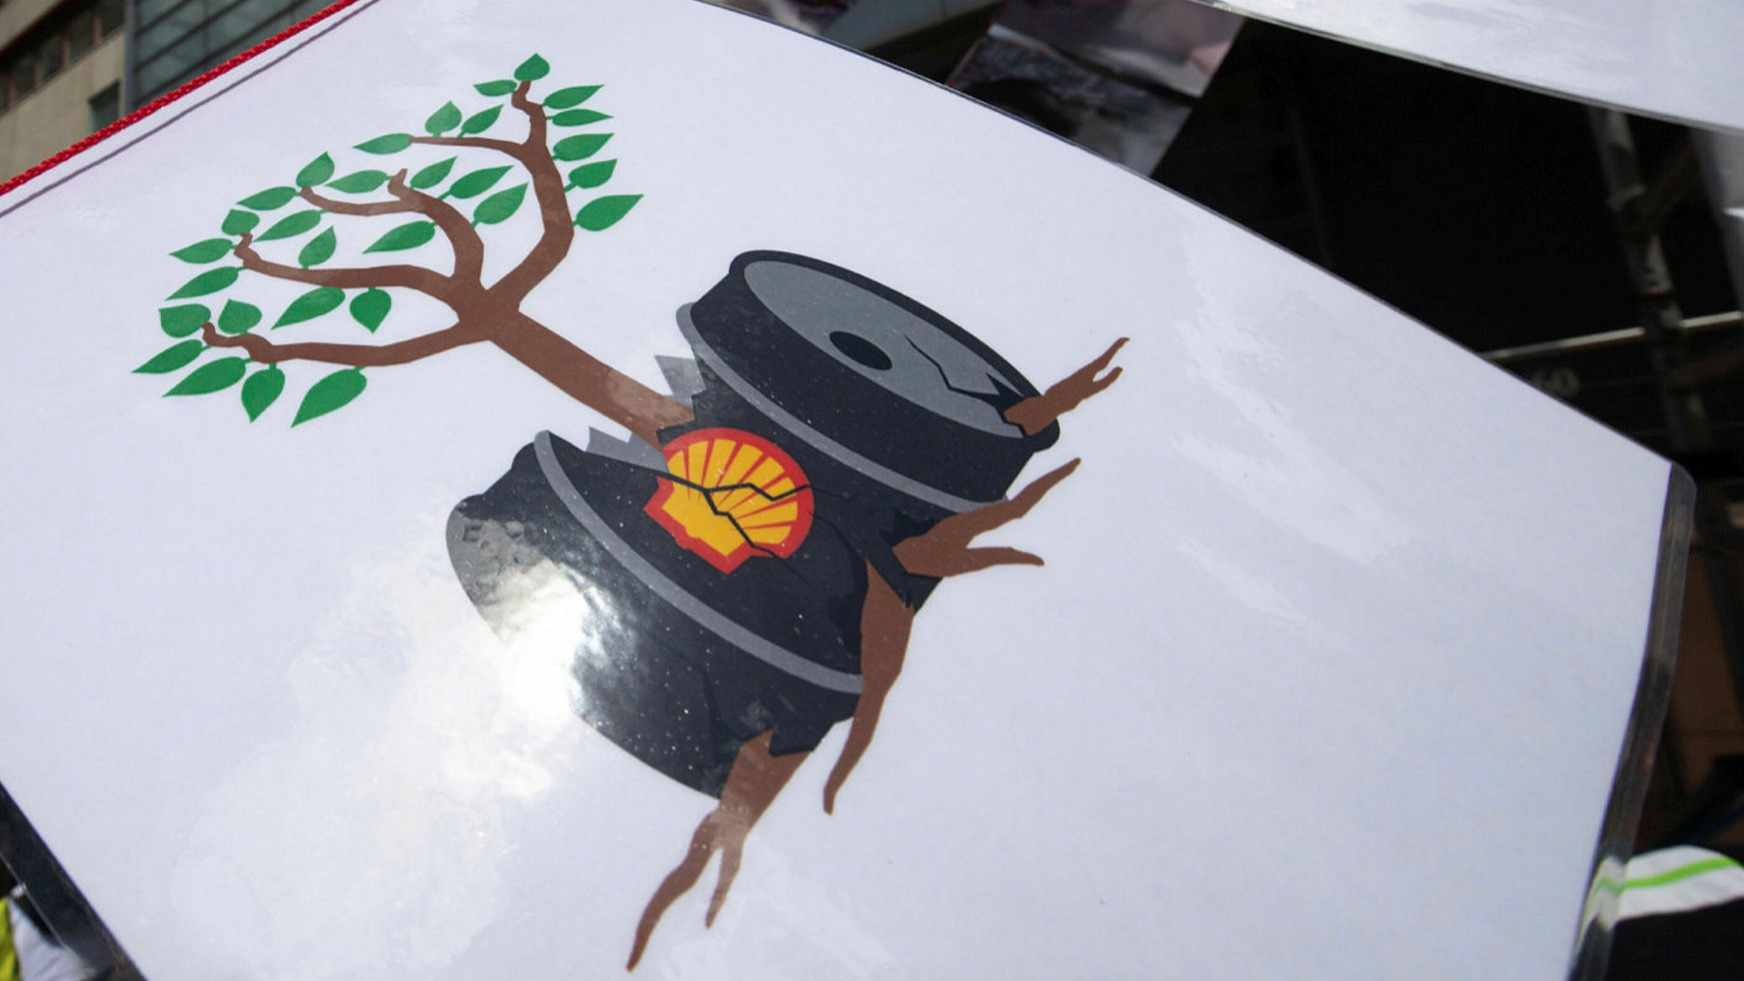 shell climate defeat matters